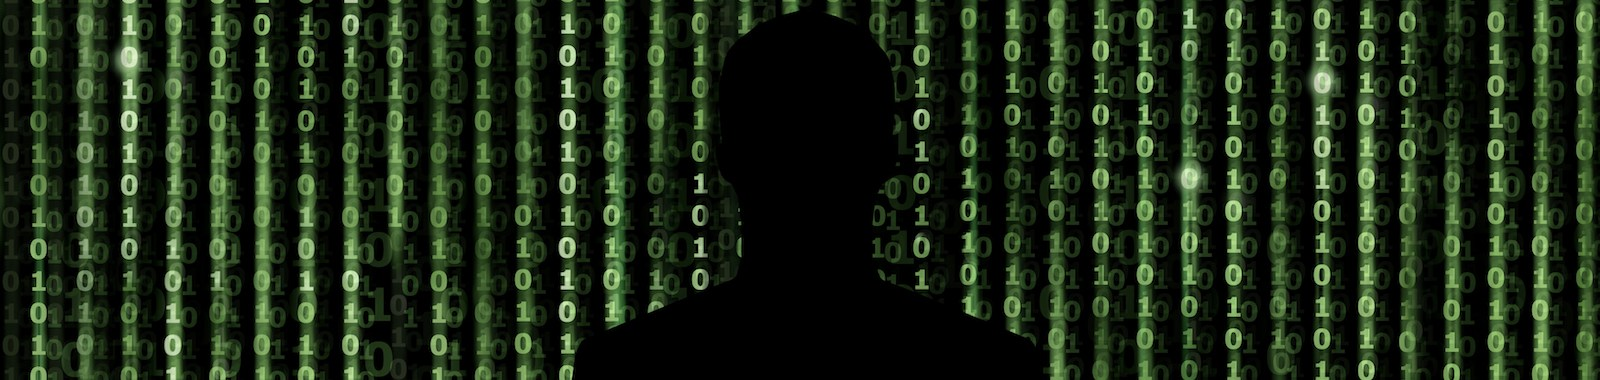 Silhouette of man looking through the digital matrix background